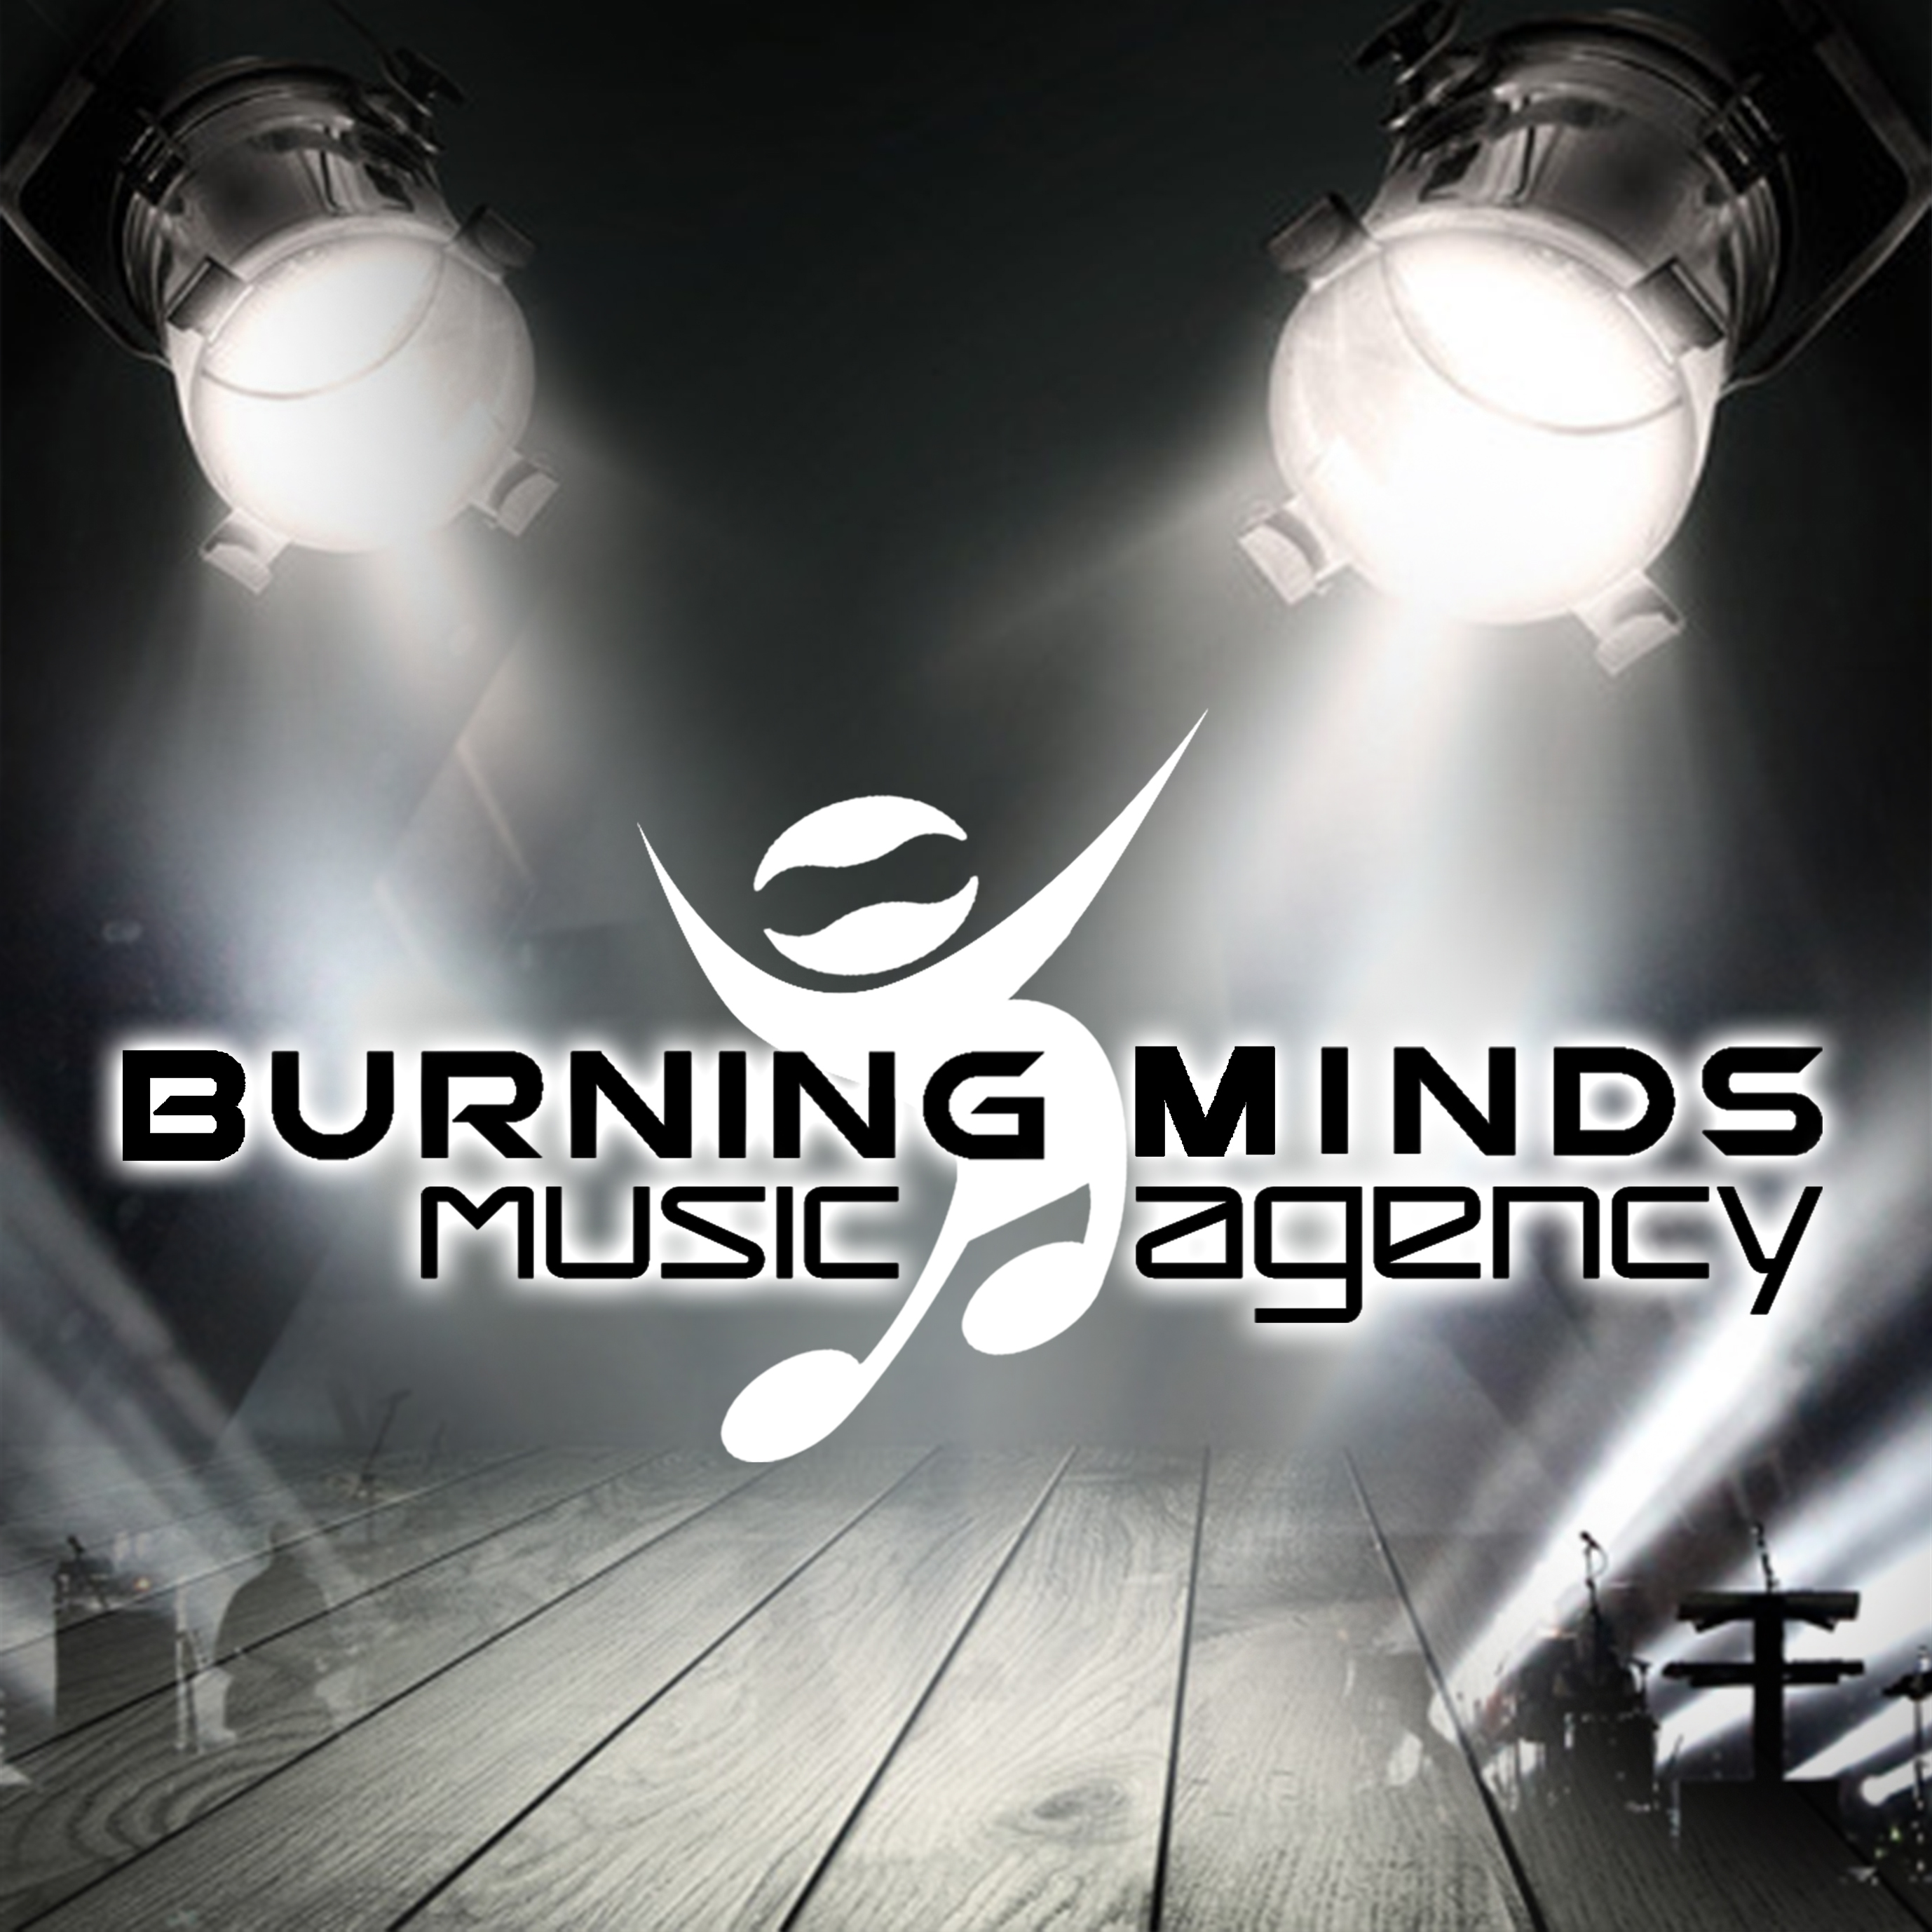 Burning Minds Music Agency